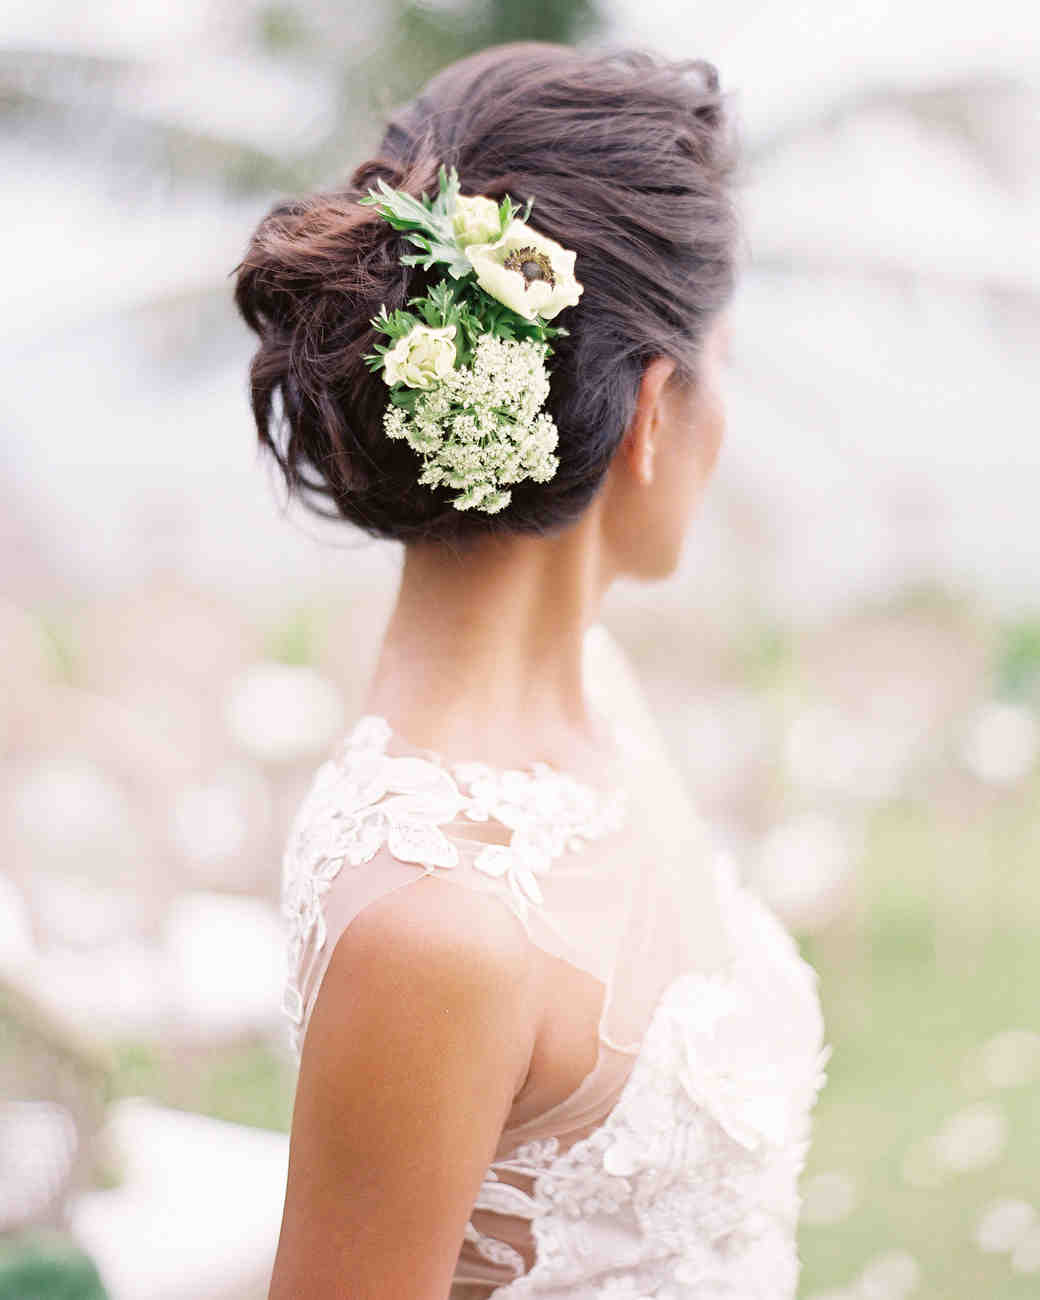 20 Wedding Hairstyles With Flowers: 20 Wedding Hairstyles With Flowers